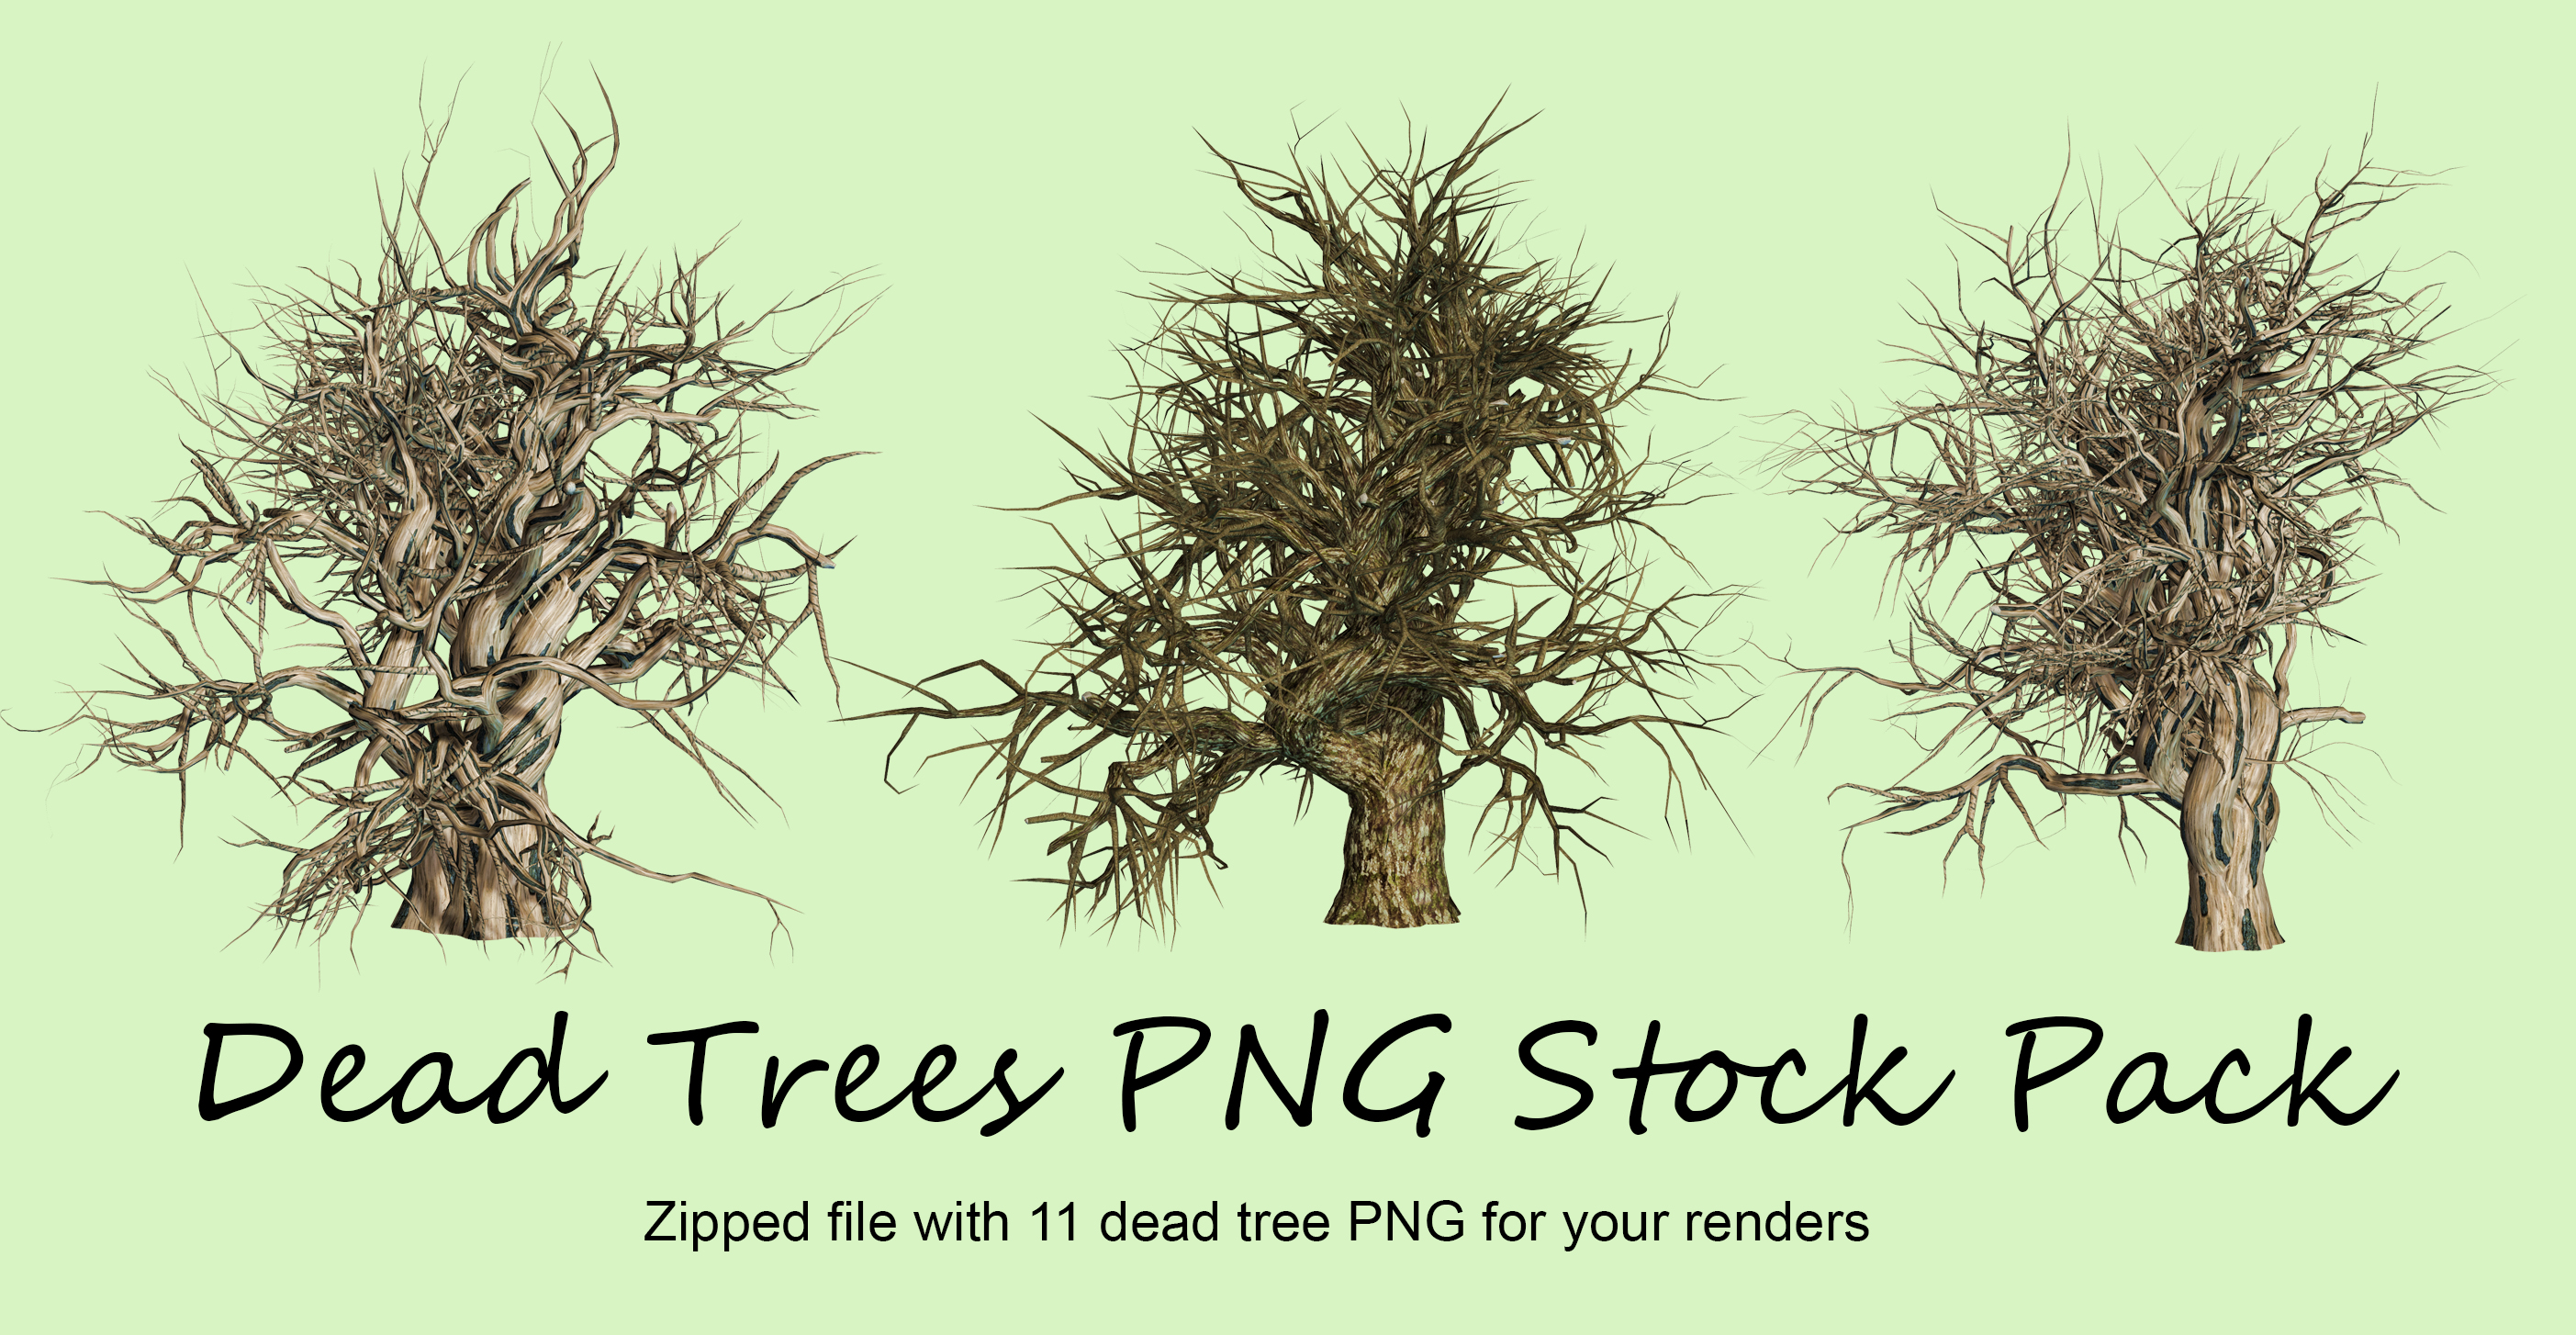 Dead Trees Pack PNG Stock